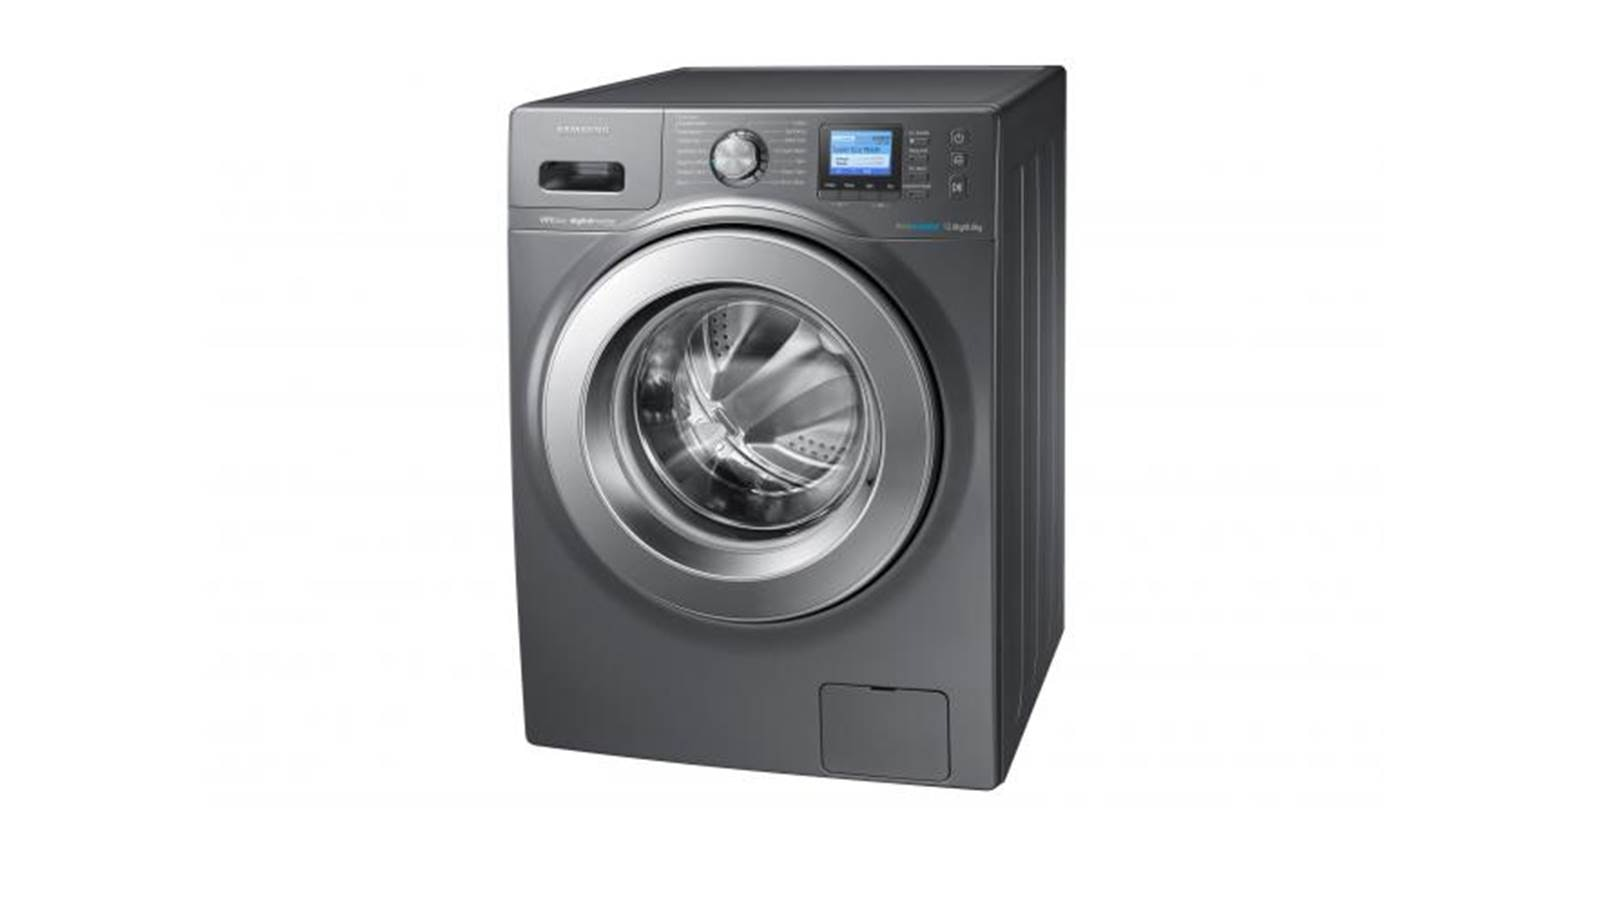 black washer and dryer. Samsung WD-12F9C9U4X 12/8KG Front Load Washer And Dryer Black H